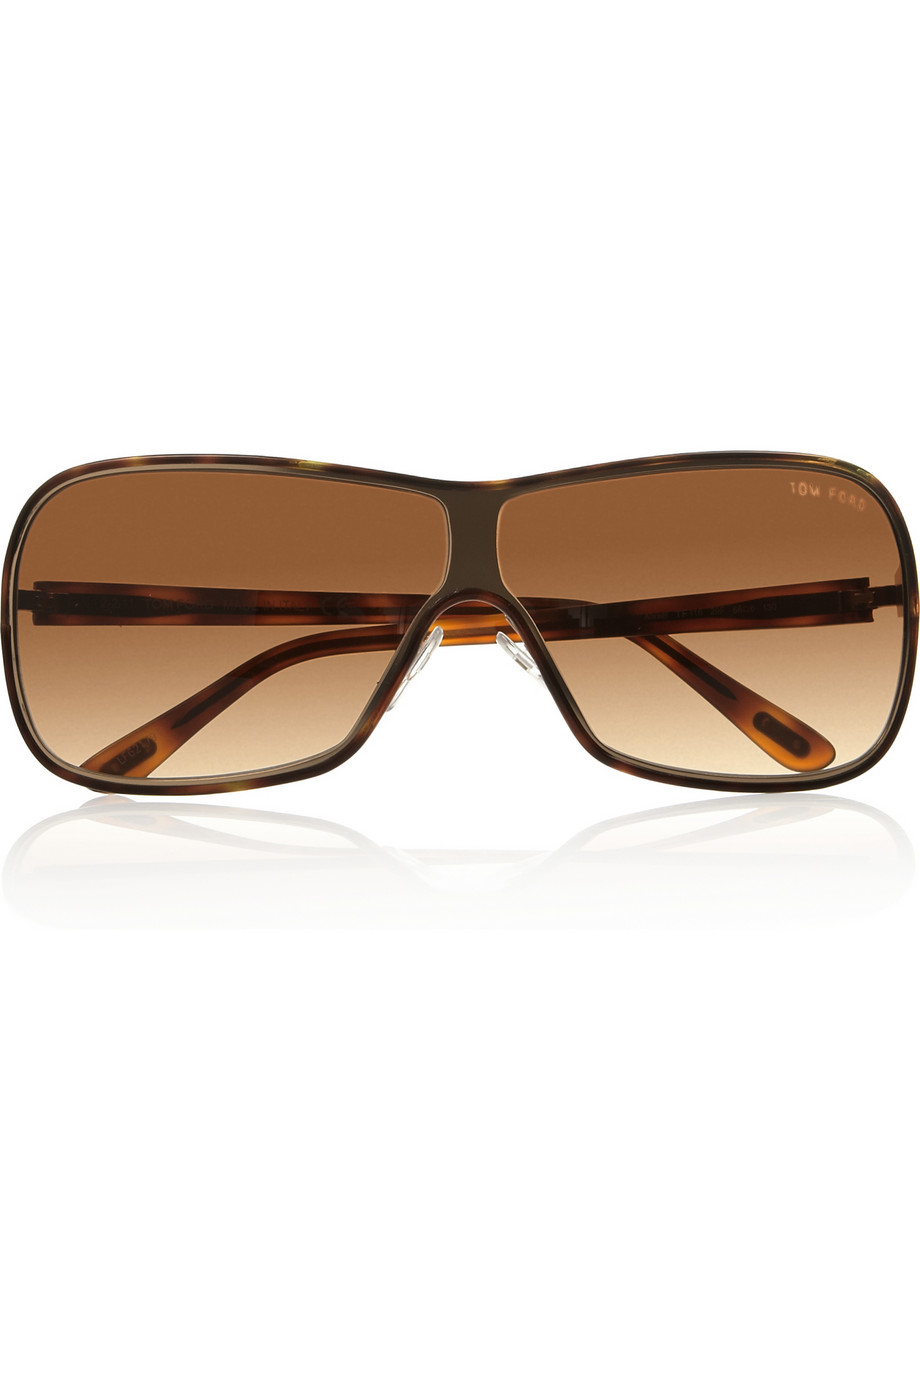 Tom Ford Havana Dframe Metal Sunglasses in Gold Lyst